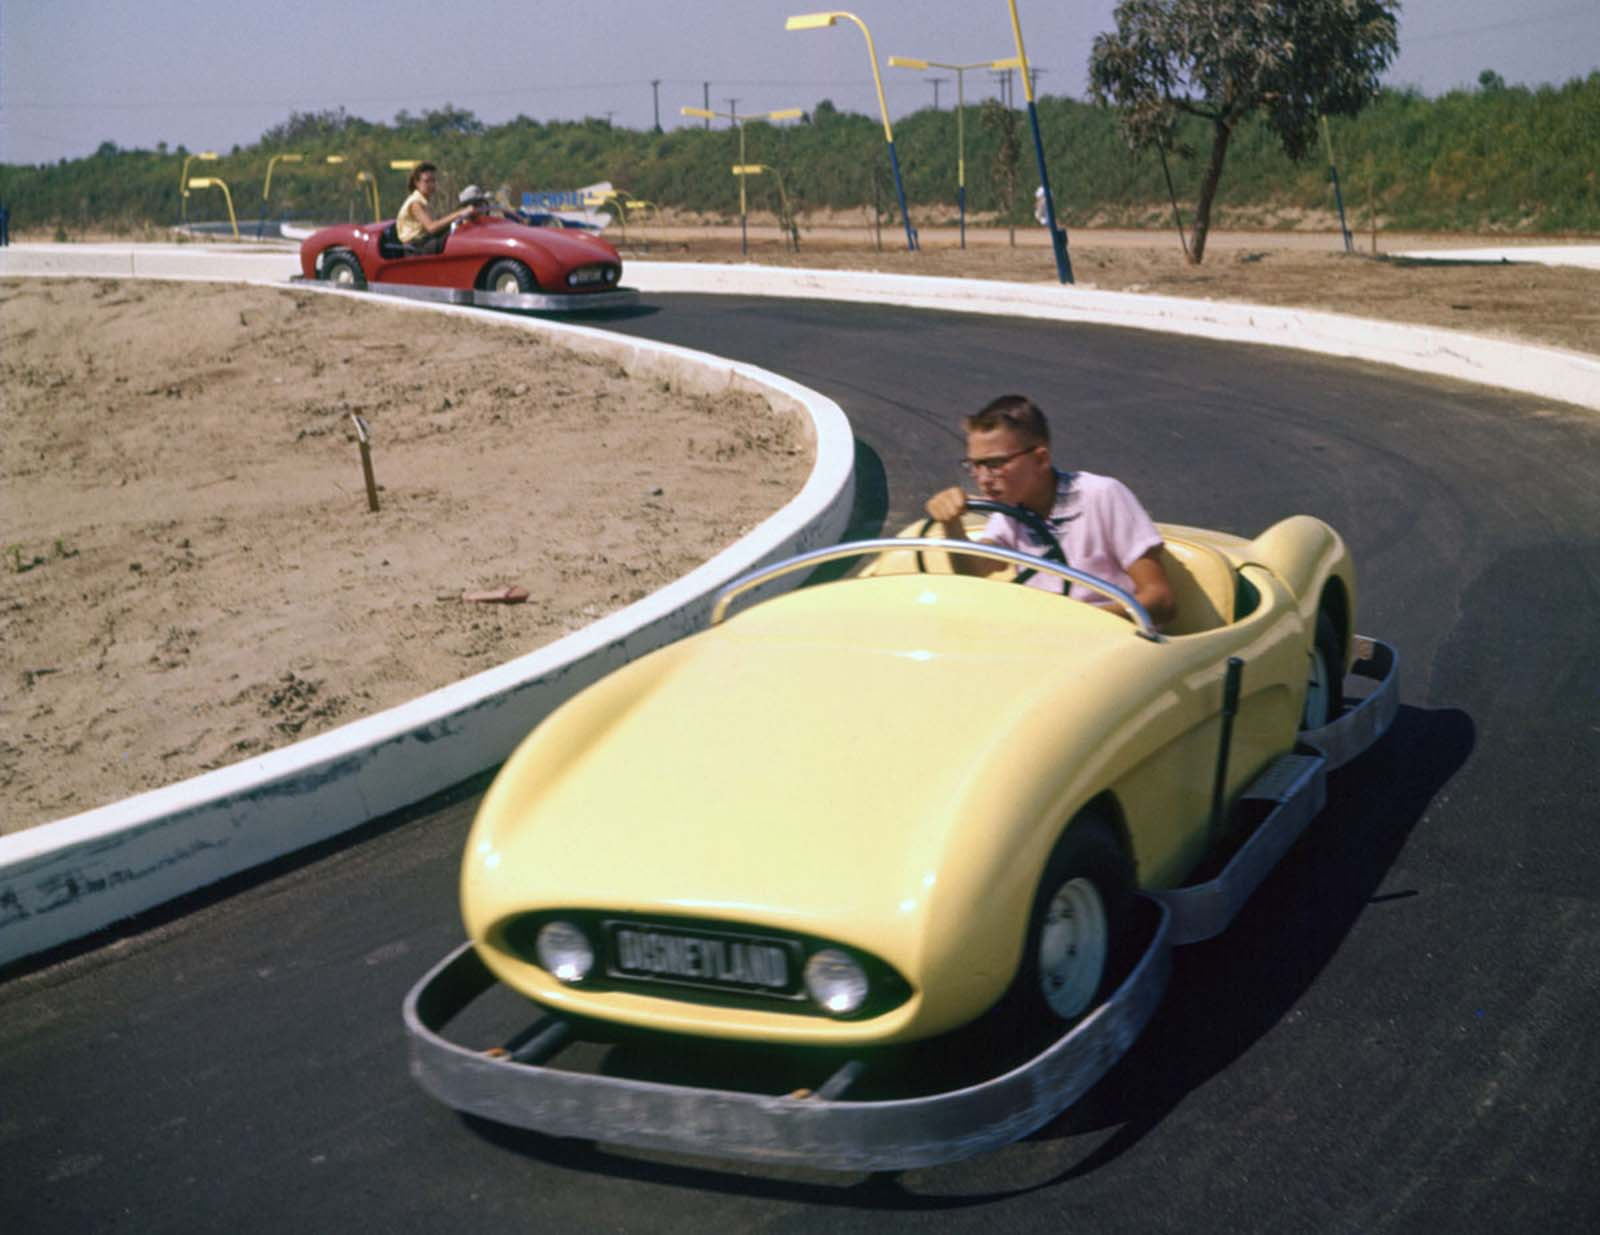 Guests enjoy the Autopia attraction on July 17, 1955.